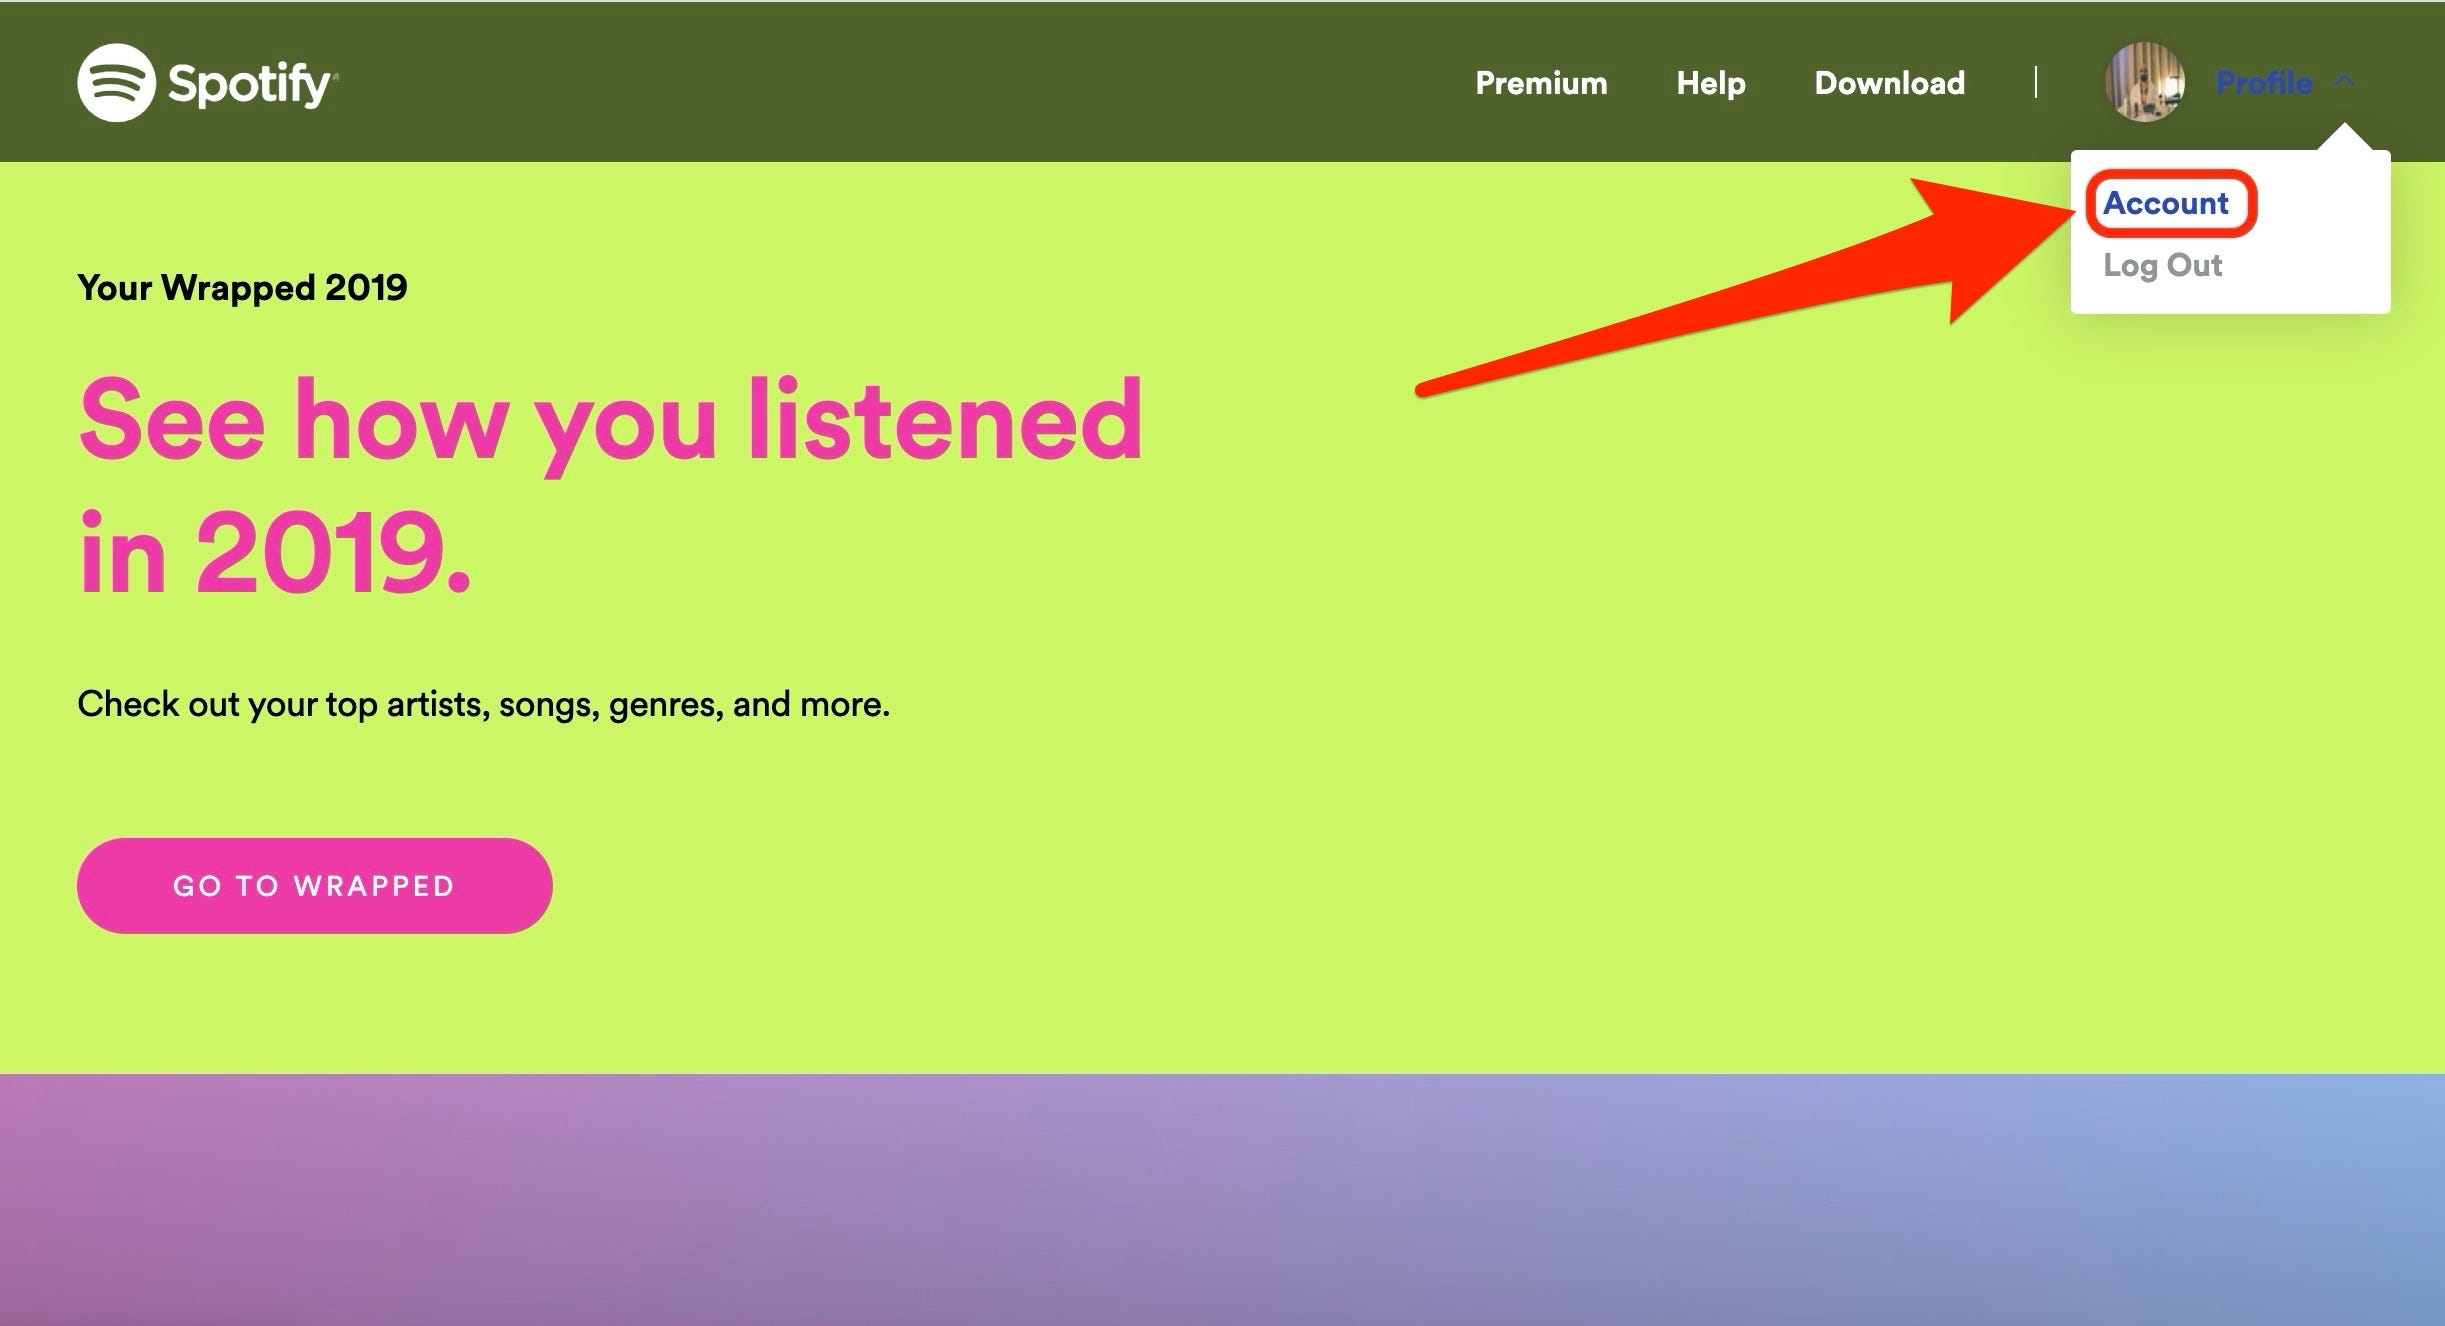 How to switch your spotify account to student